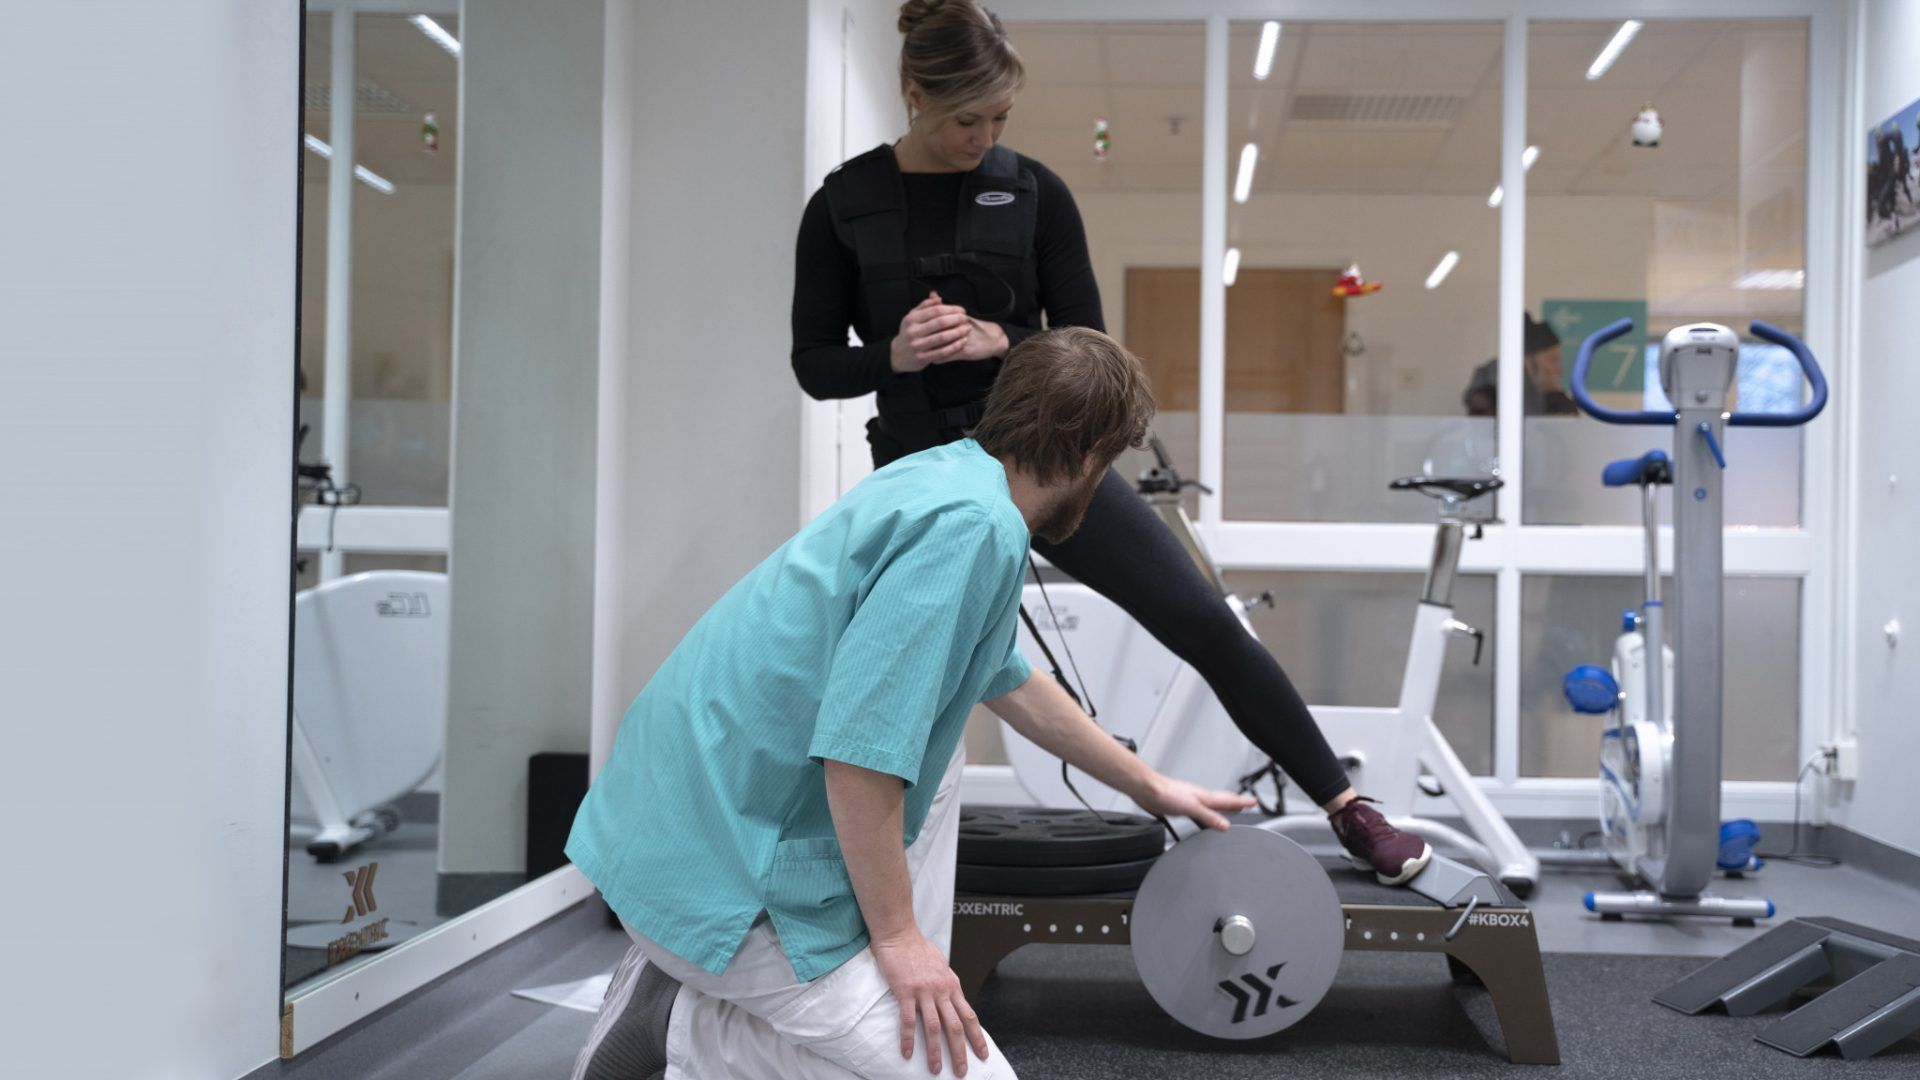 ACL Rehabilitation with kBox4 Pro and Flywheel Training